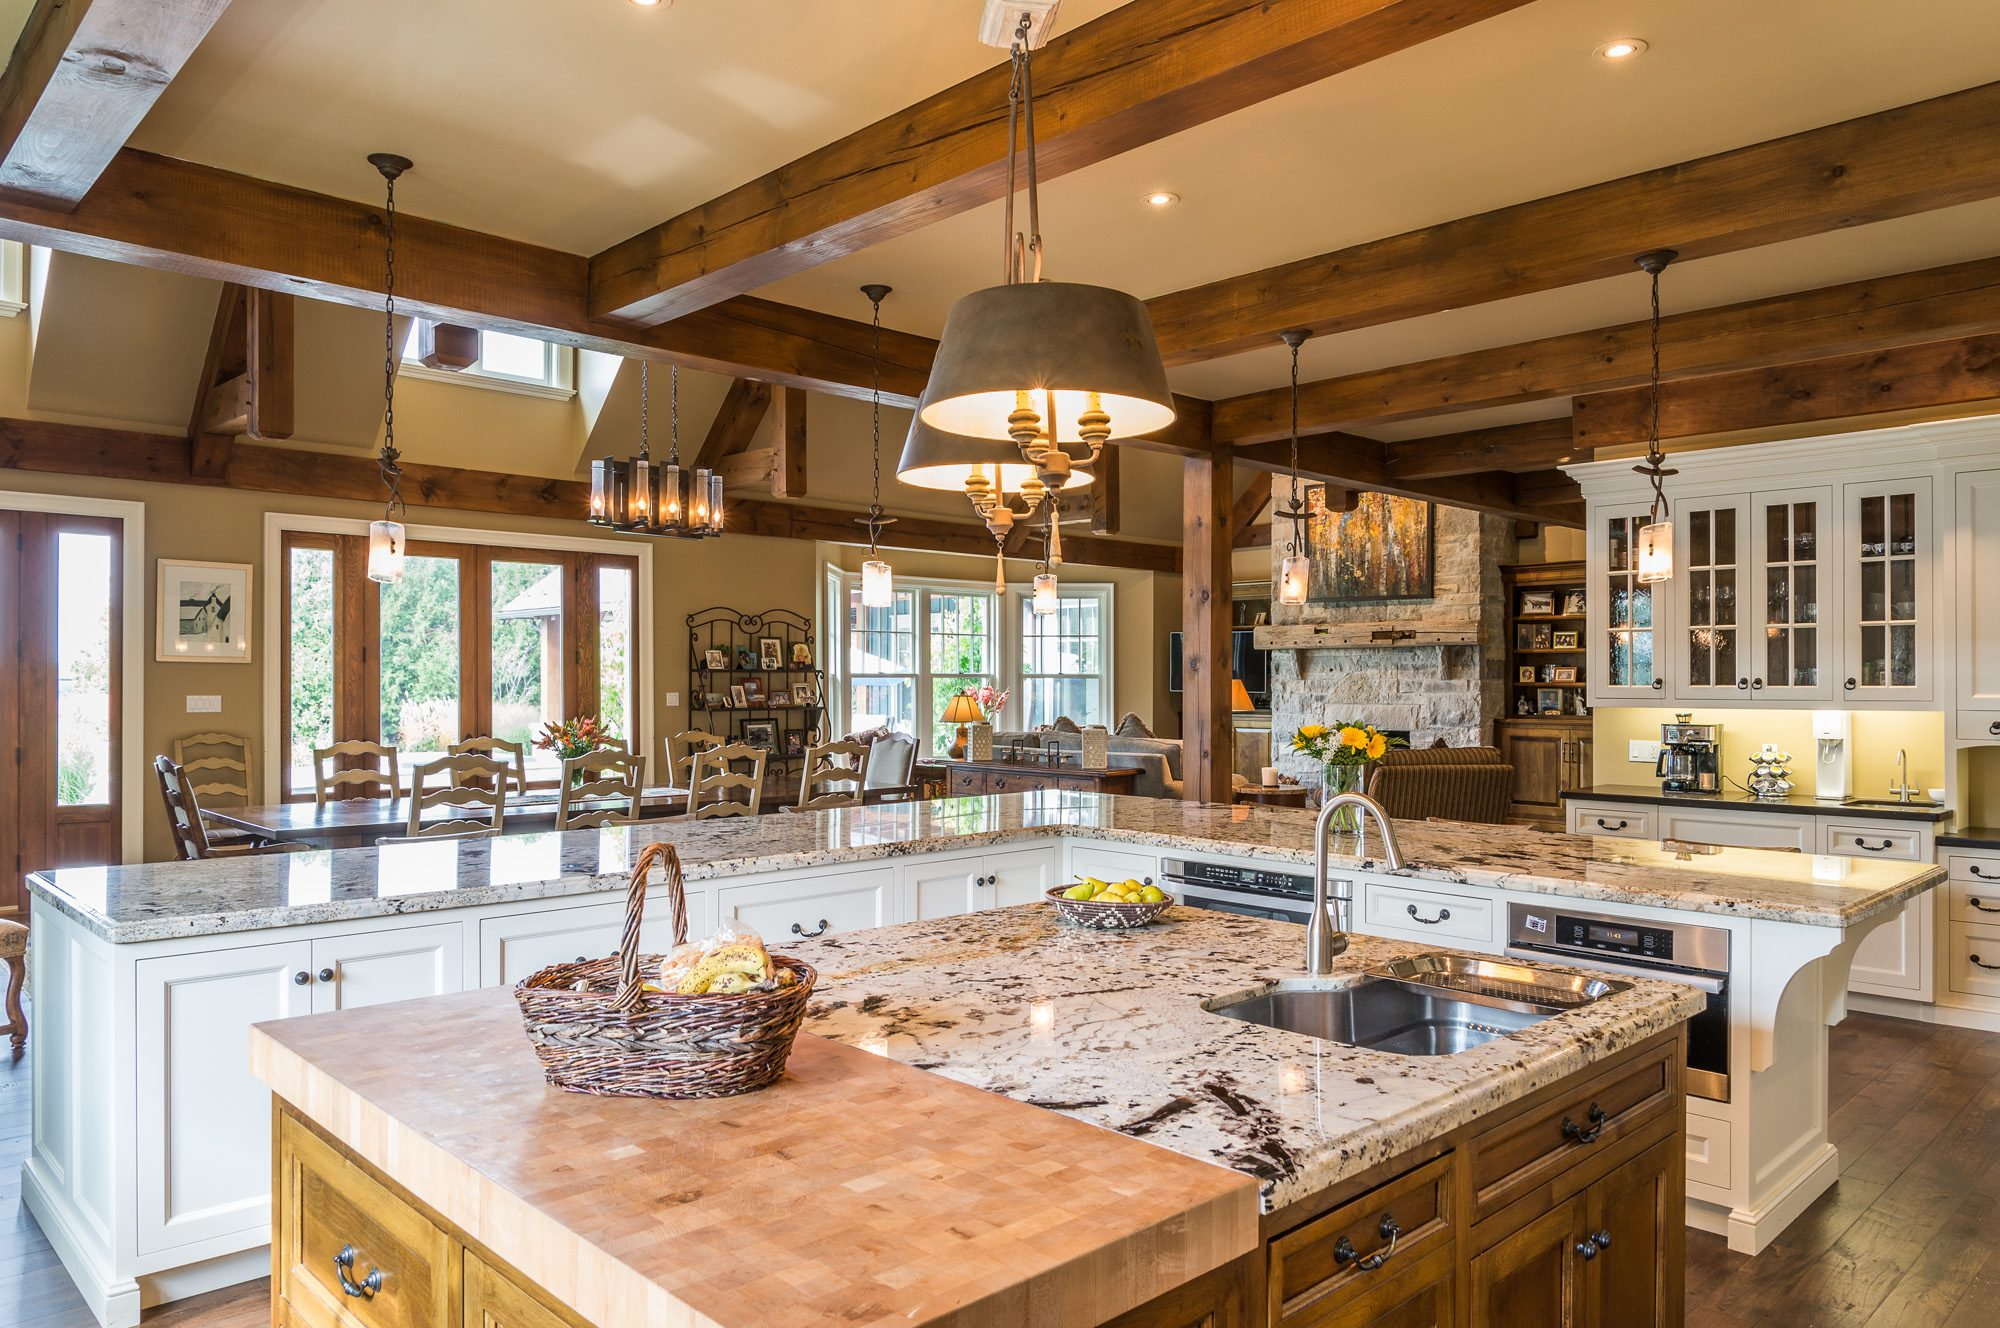 Normerica Timber Frame, Interior, Country House, Kitchen